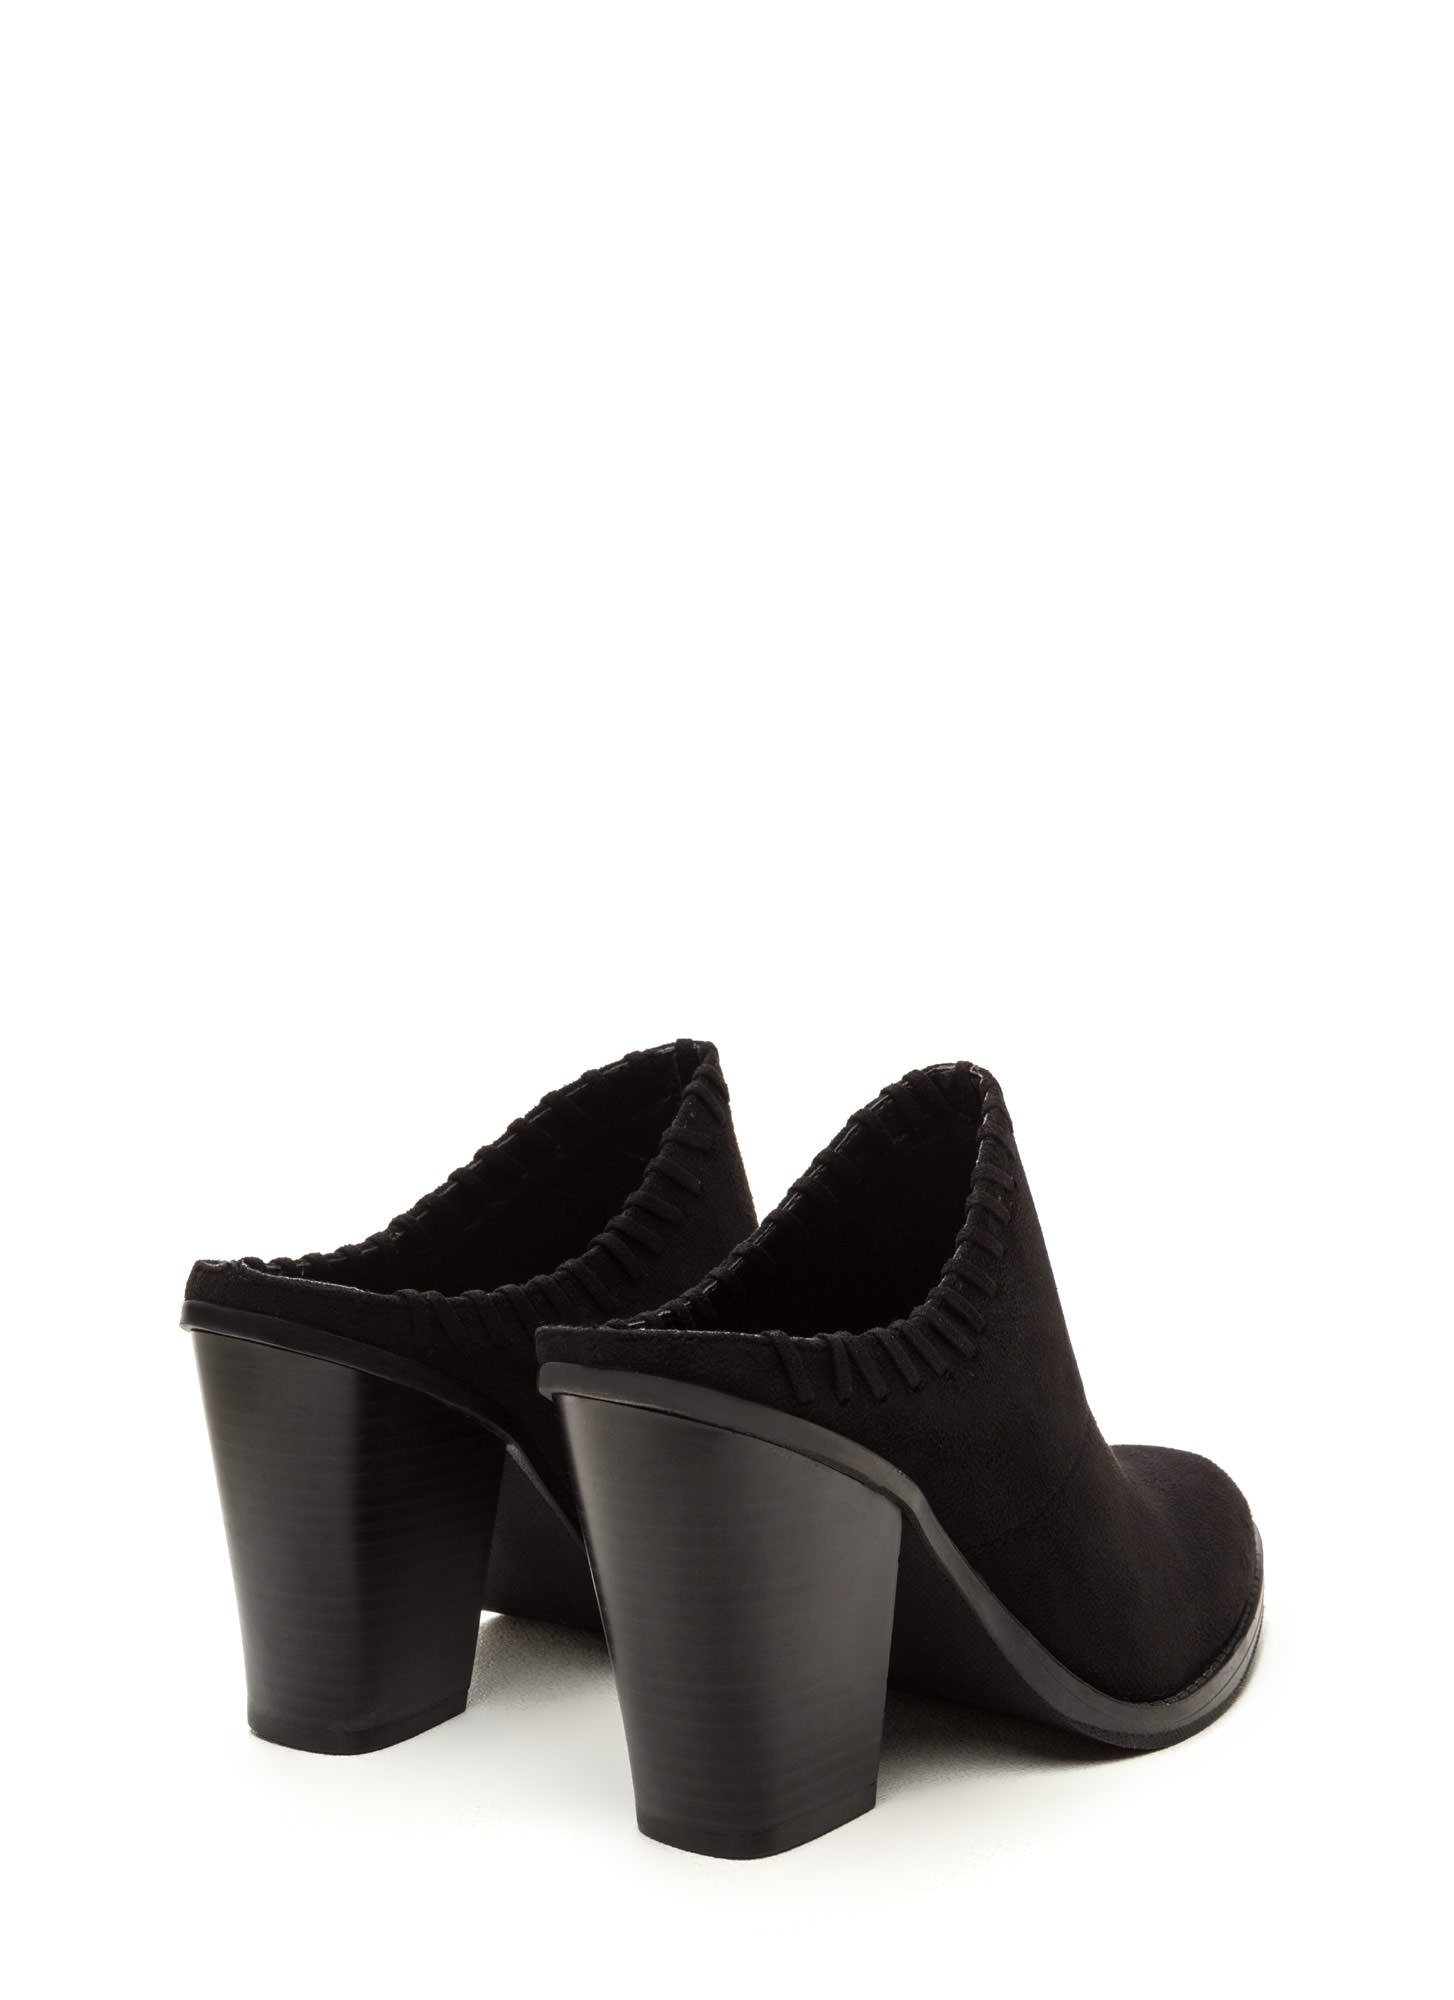 Stitch It Pointy Chunky Mule Heels BLACK